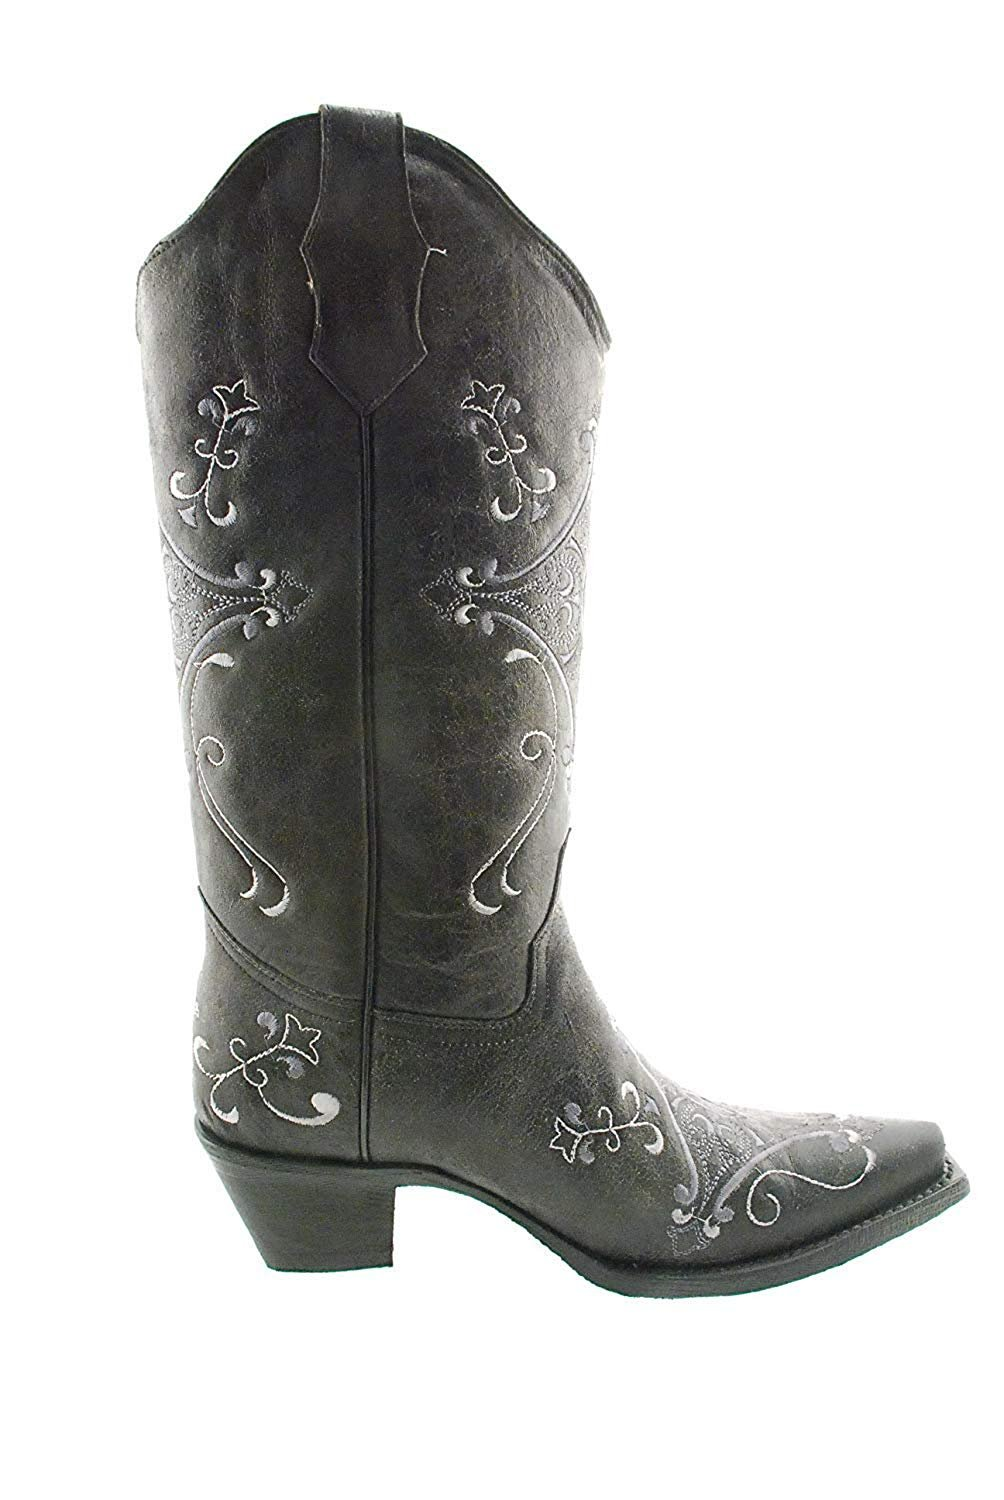 fd7118e039d CORRAL Women's Circle G Crackle Scroll Bone Embroidered Western Boot (10.5  M US)